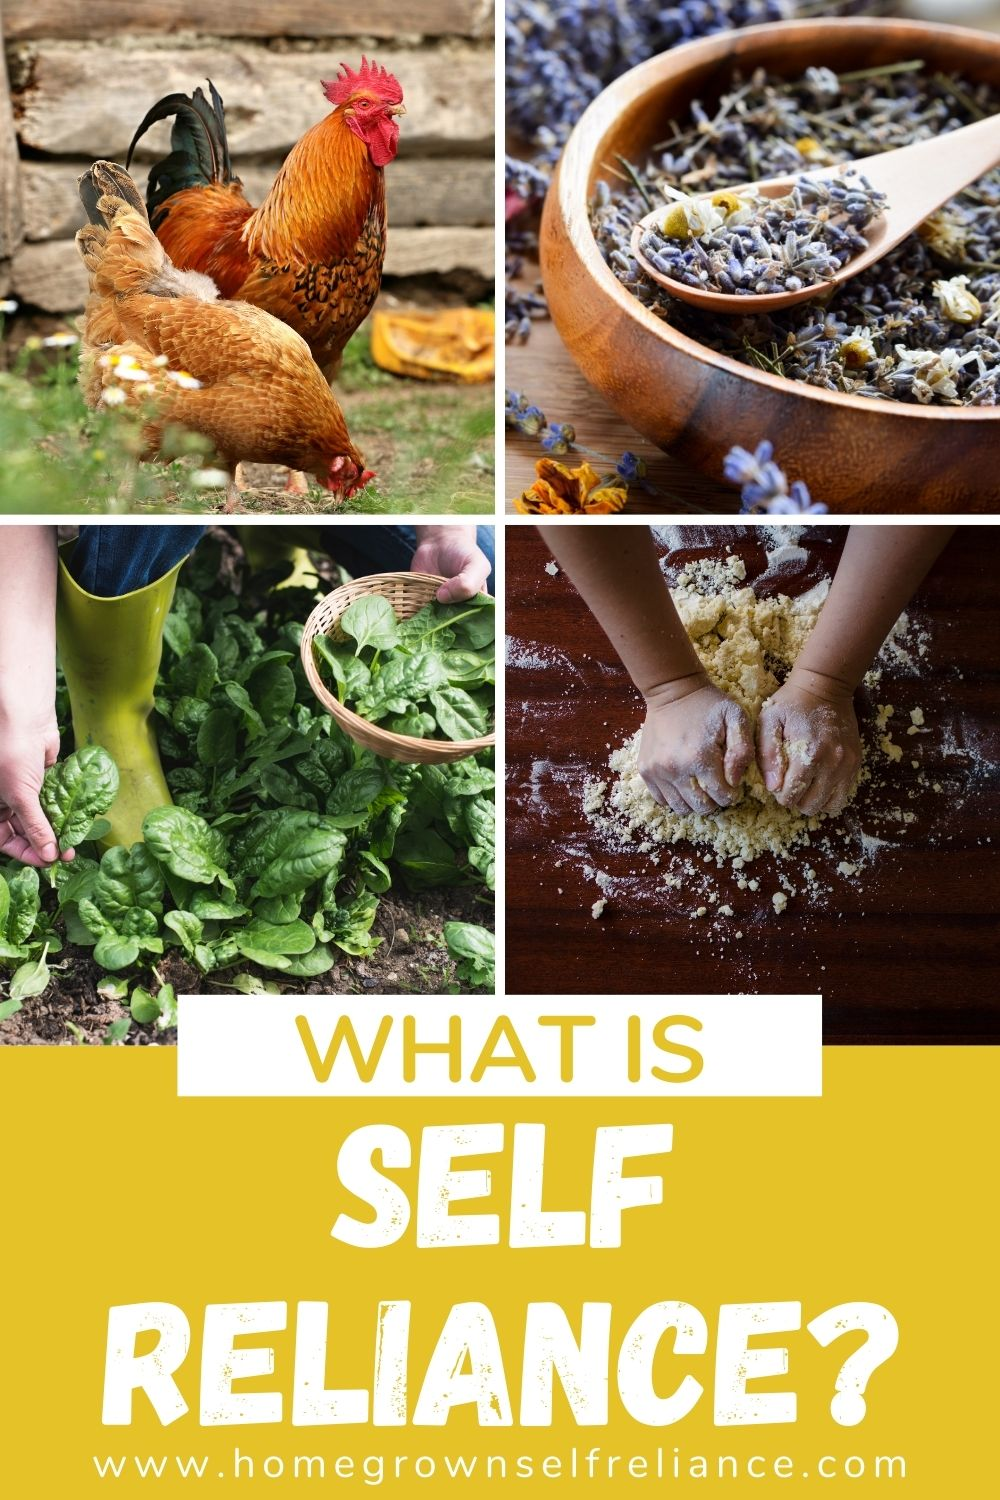 What is self reliance? Raising animals, making your own medicine, gardening, cooking from scratch